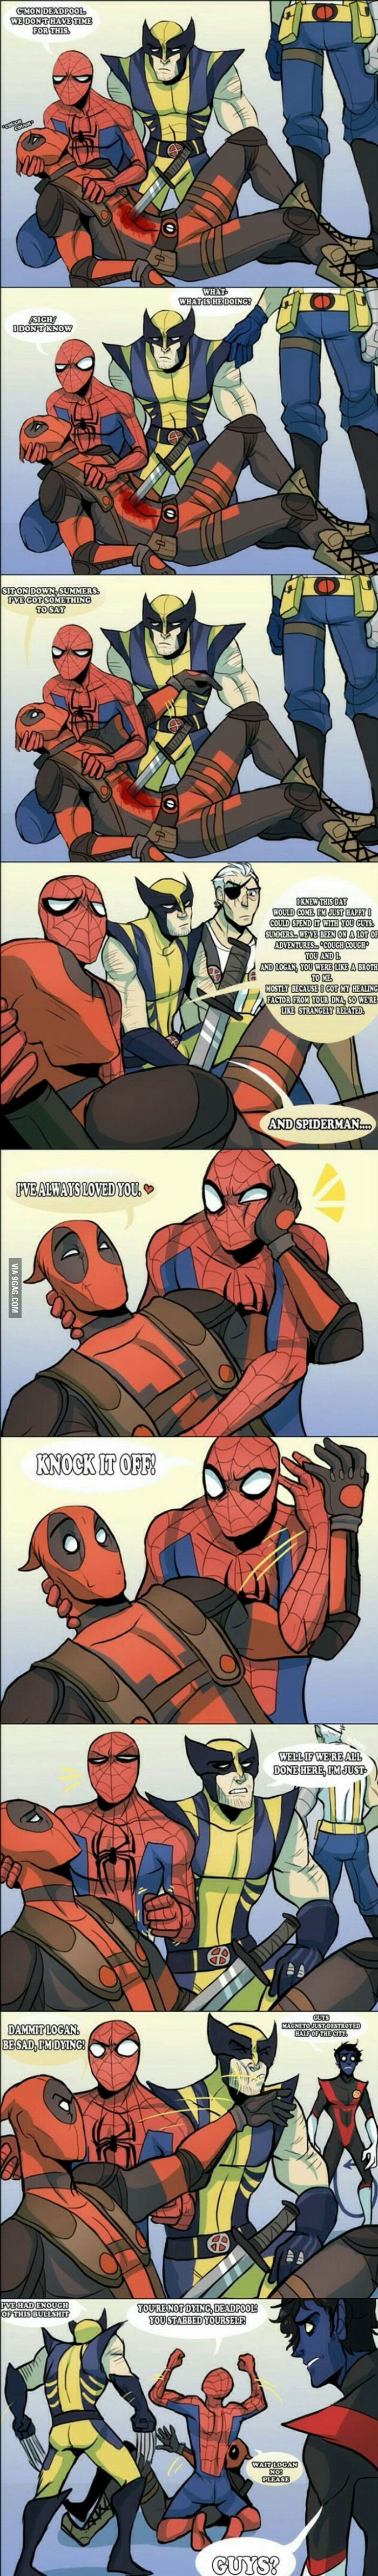 """Pahaha! Freaking Deadpool. He's so emotional and Spiderman is all """"OK, put your feelings away and let's go."""""""